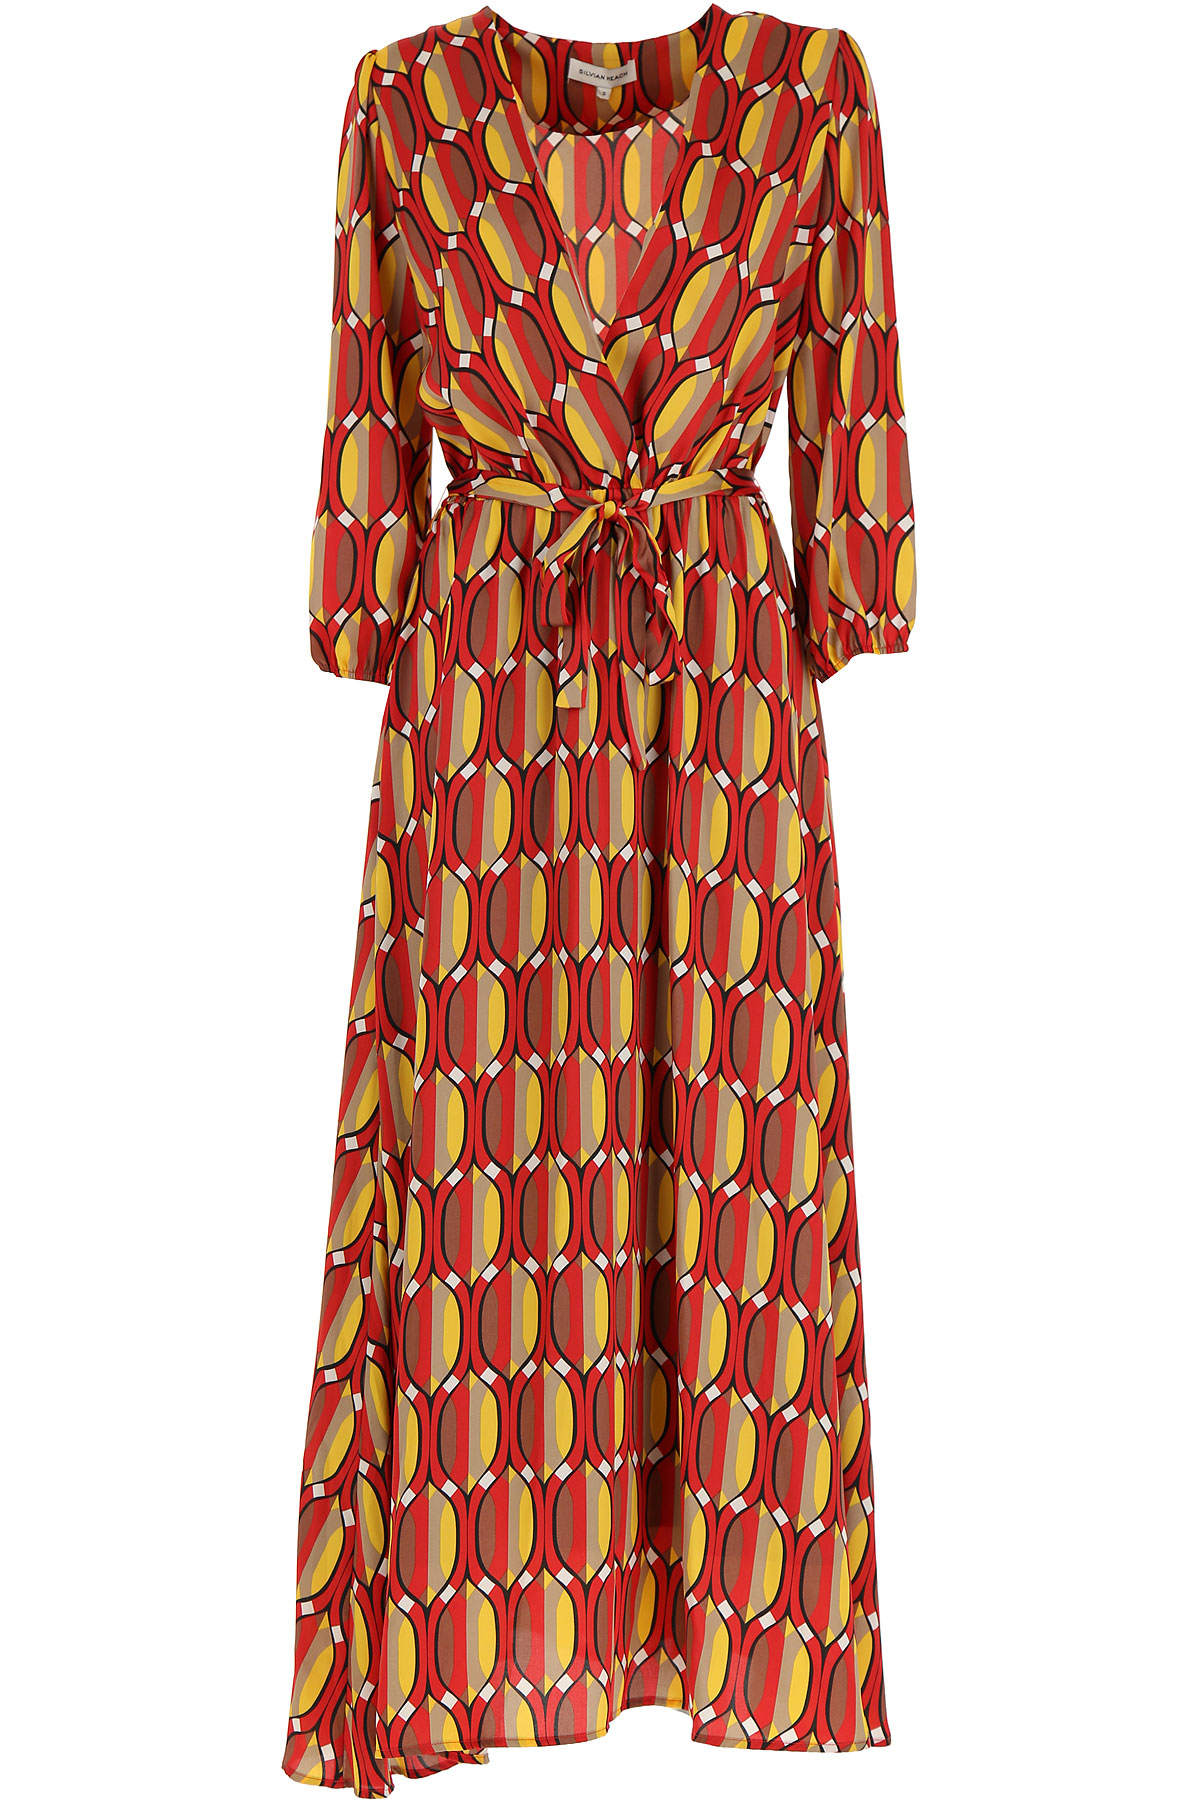 Silvian Heach Dress for Women, Evening Cocktail Party On Sale, Multicolor, polyester, 2019, 2 4 6